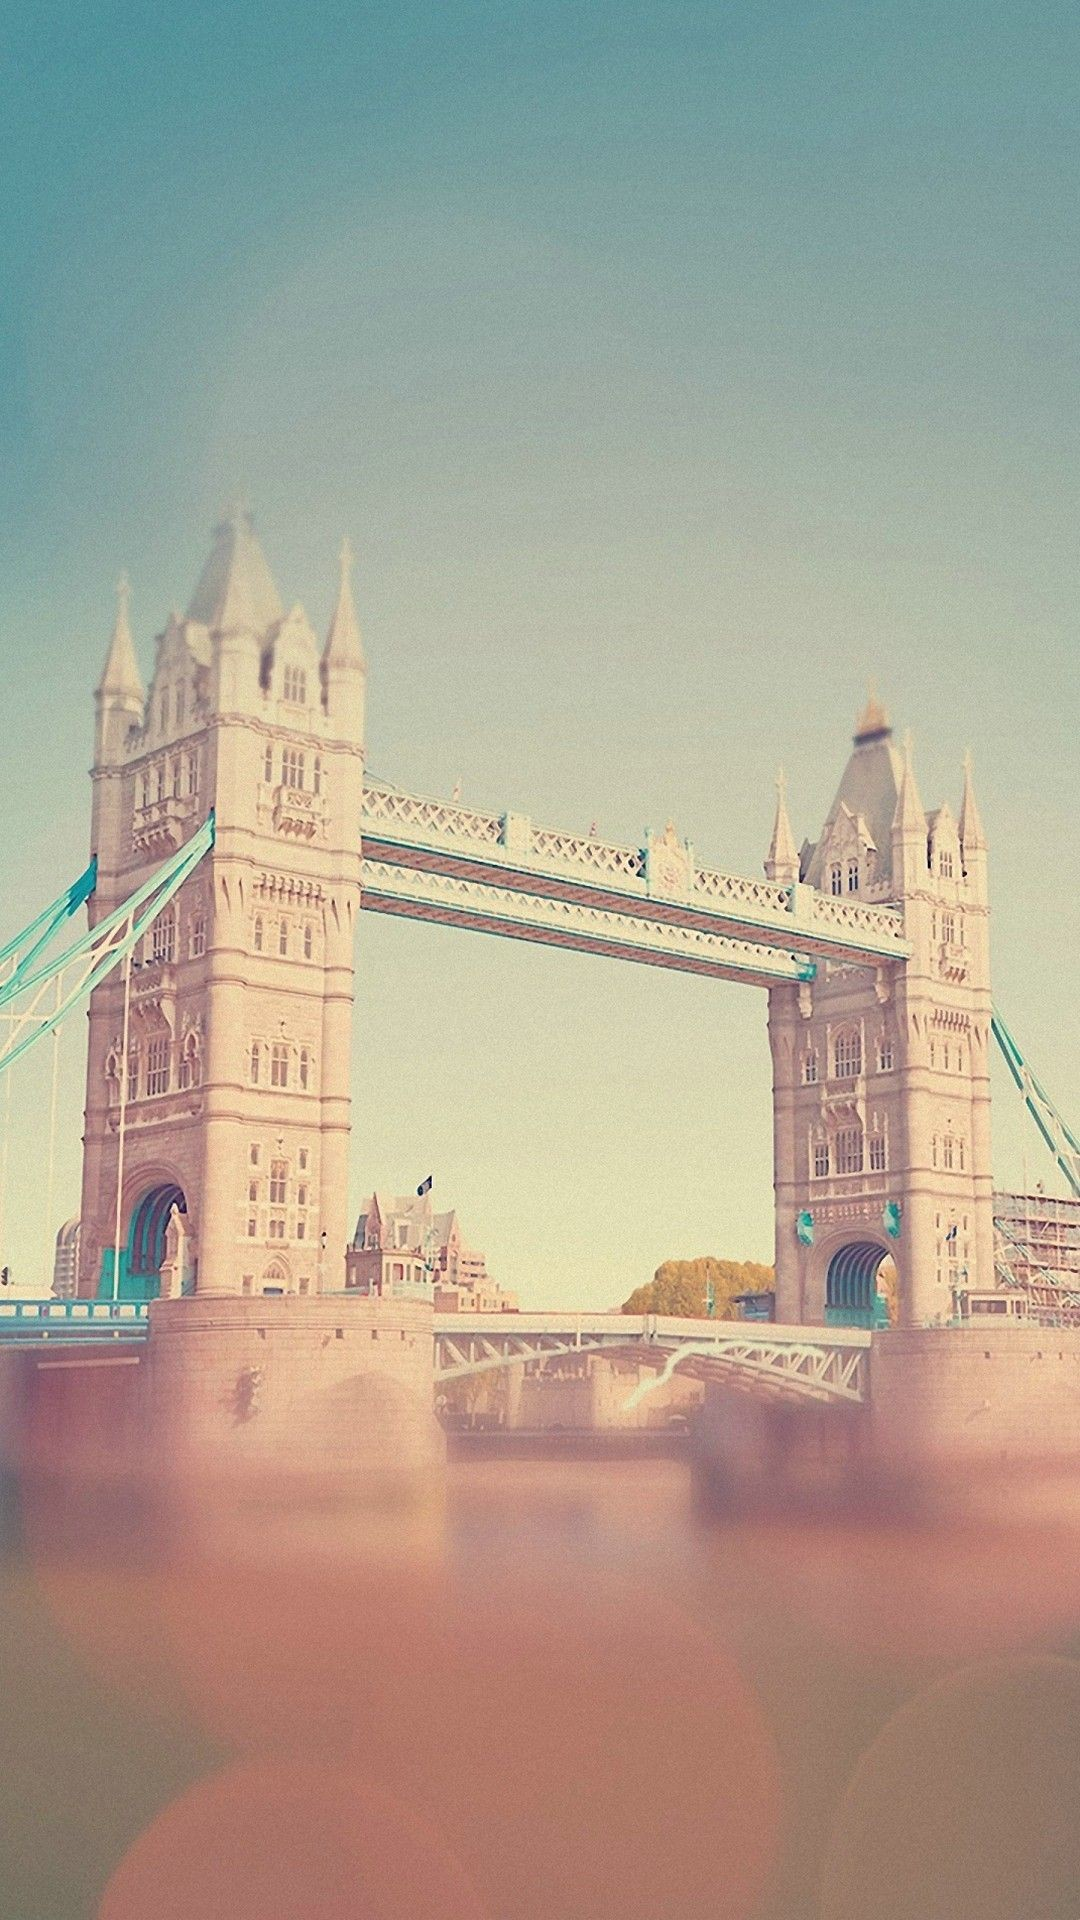 Res: 1080x1920, London Bridge Wallpaper Android - Best Android Wallpapers